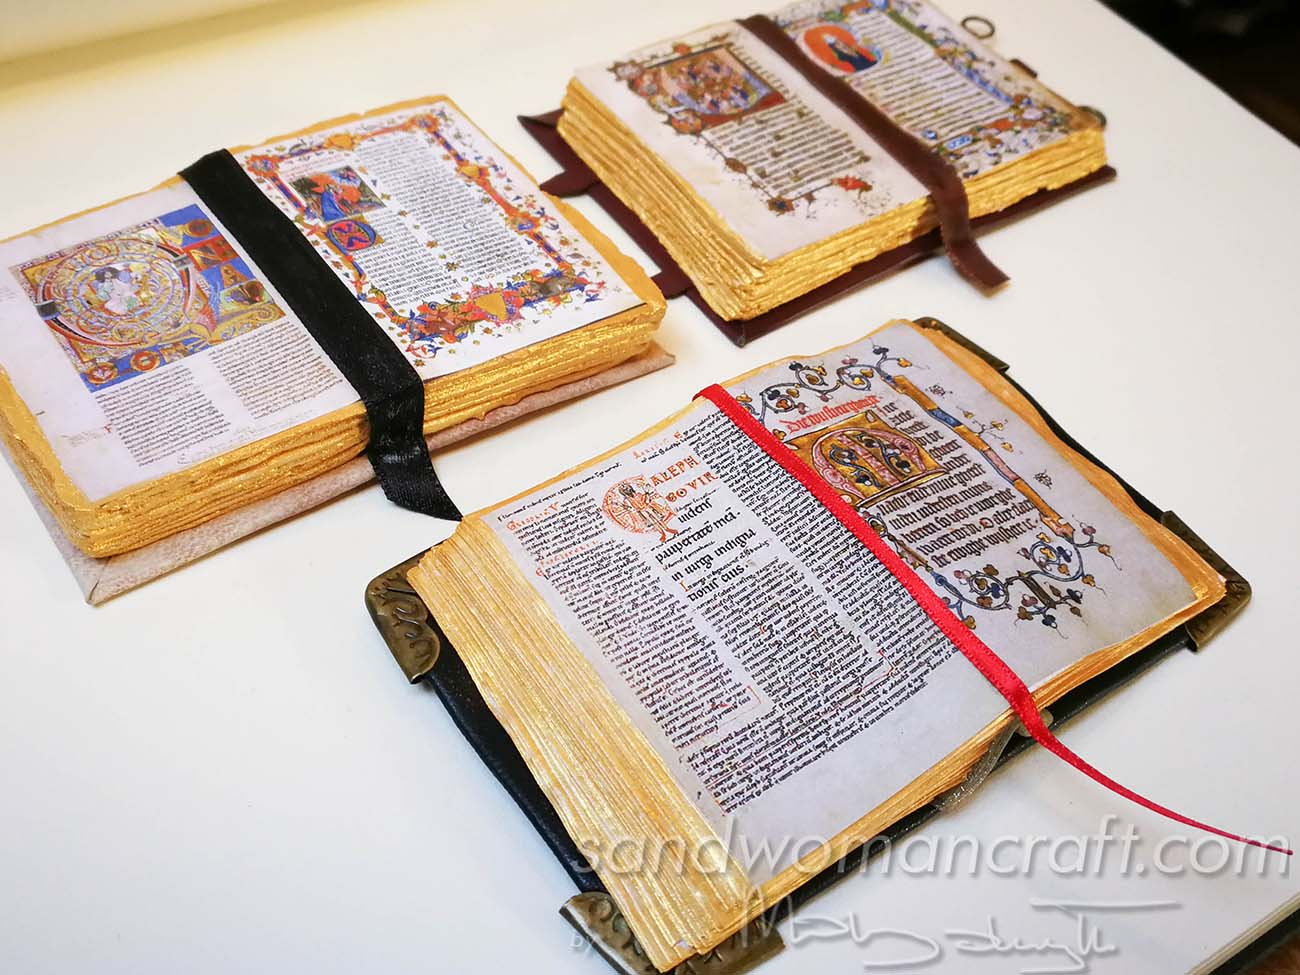 Miniature open books in 1:6 scale. Medieval theme